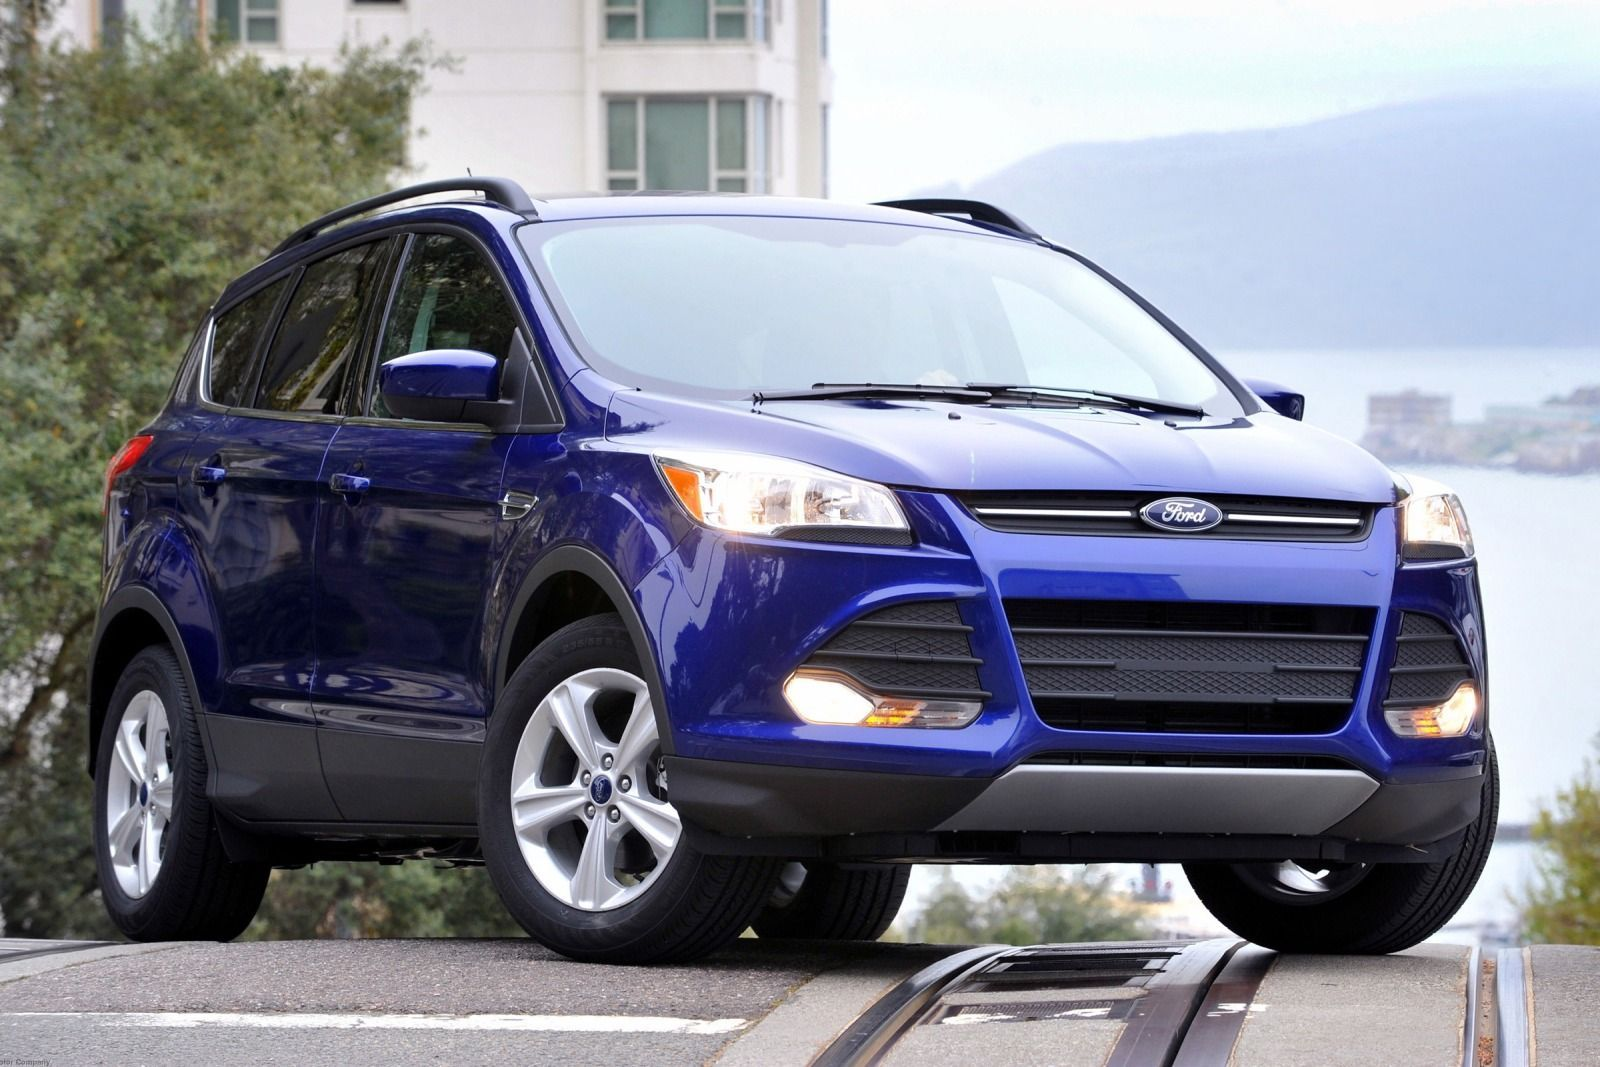 2016 ford escape suv concept design photo hd wallpaper